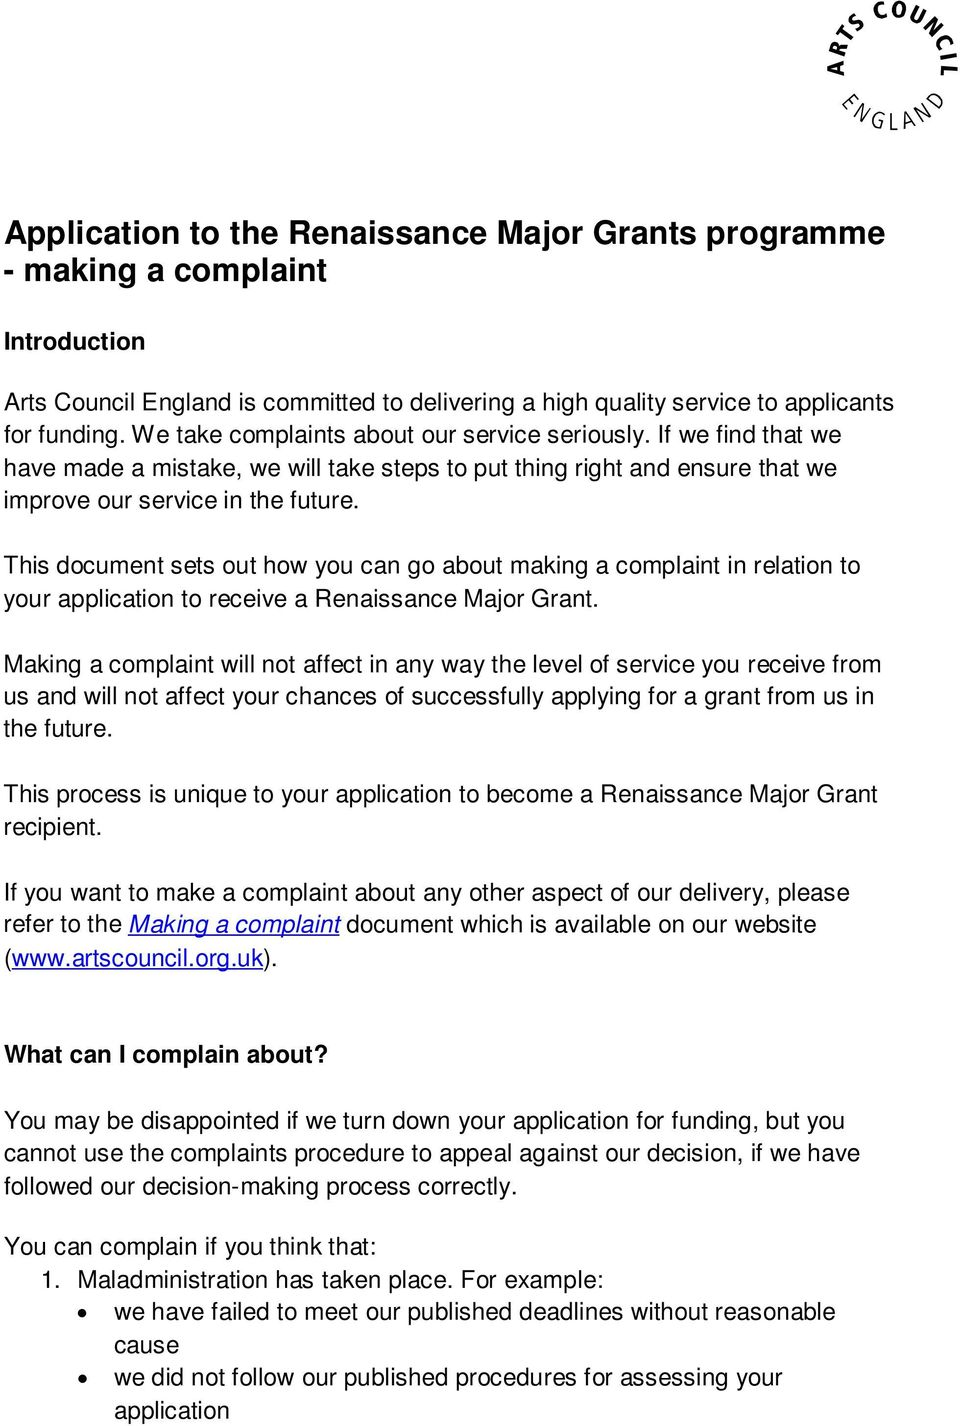 This document sets out how you can go about making a complaint in relation to your application to receive a Renaissance Major Grant.